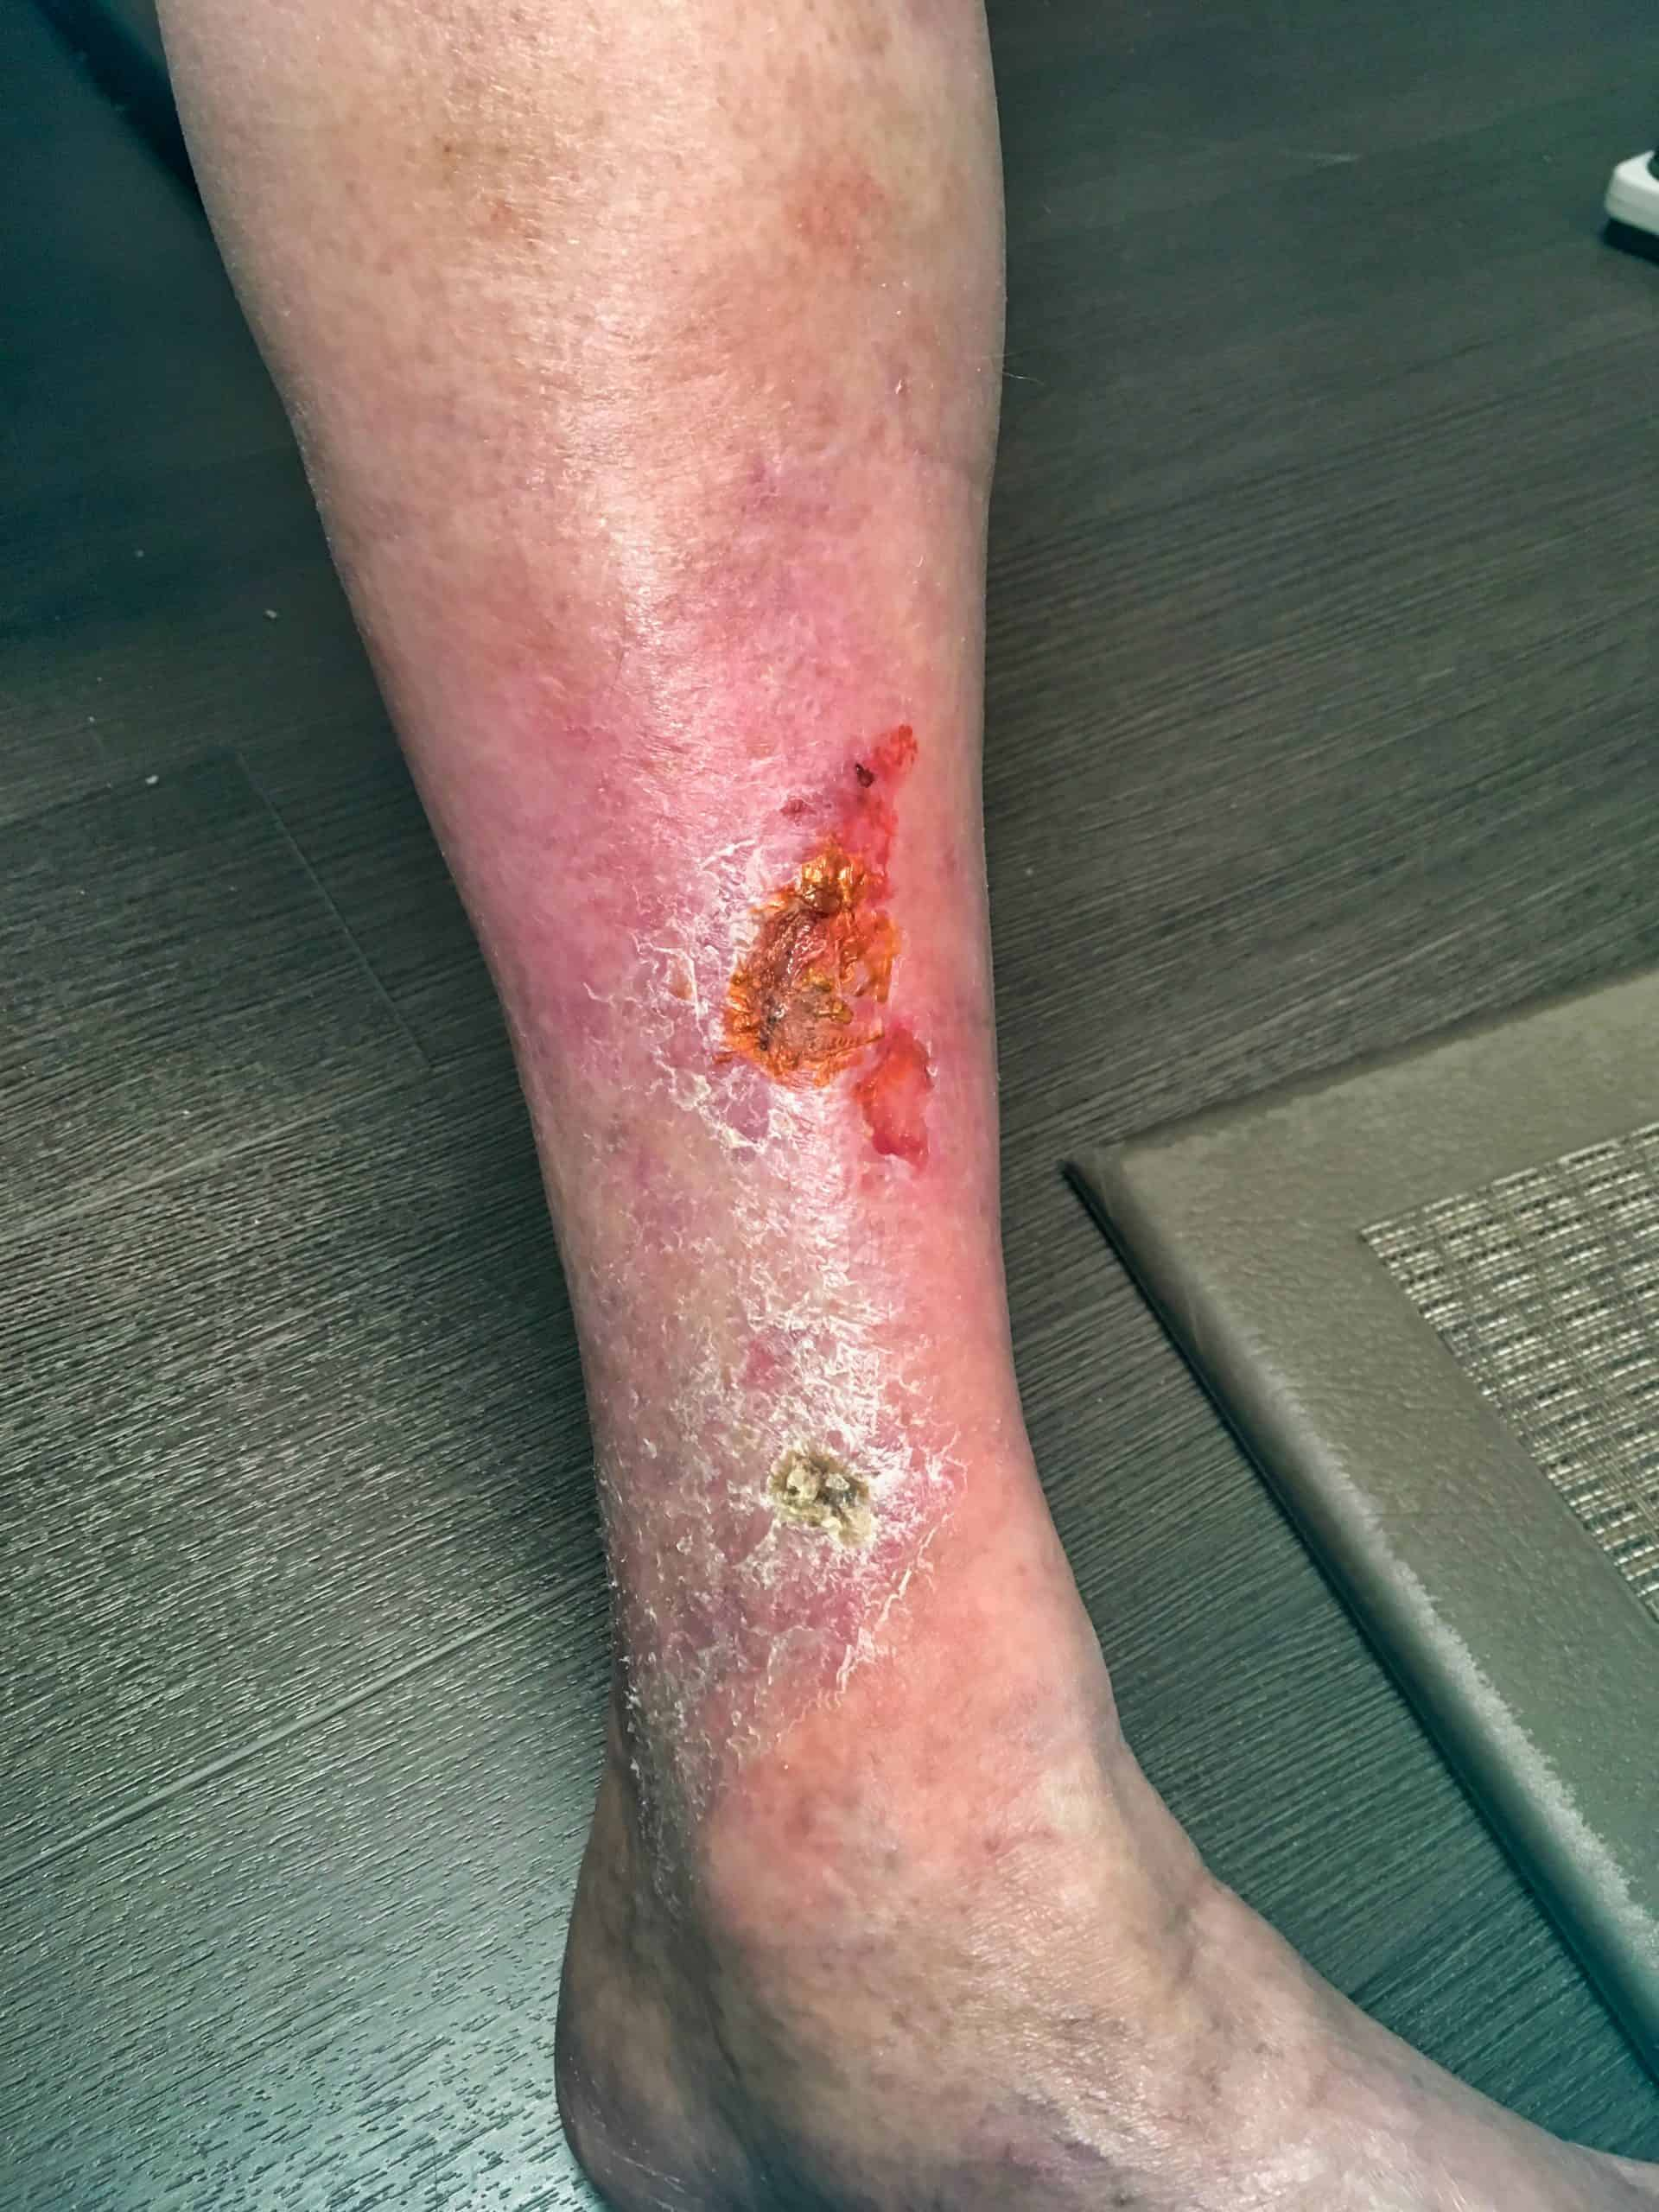 Leg ulcer and discoloration before